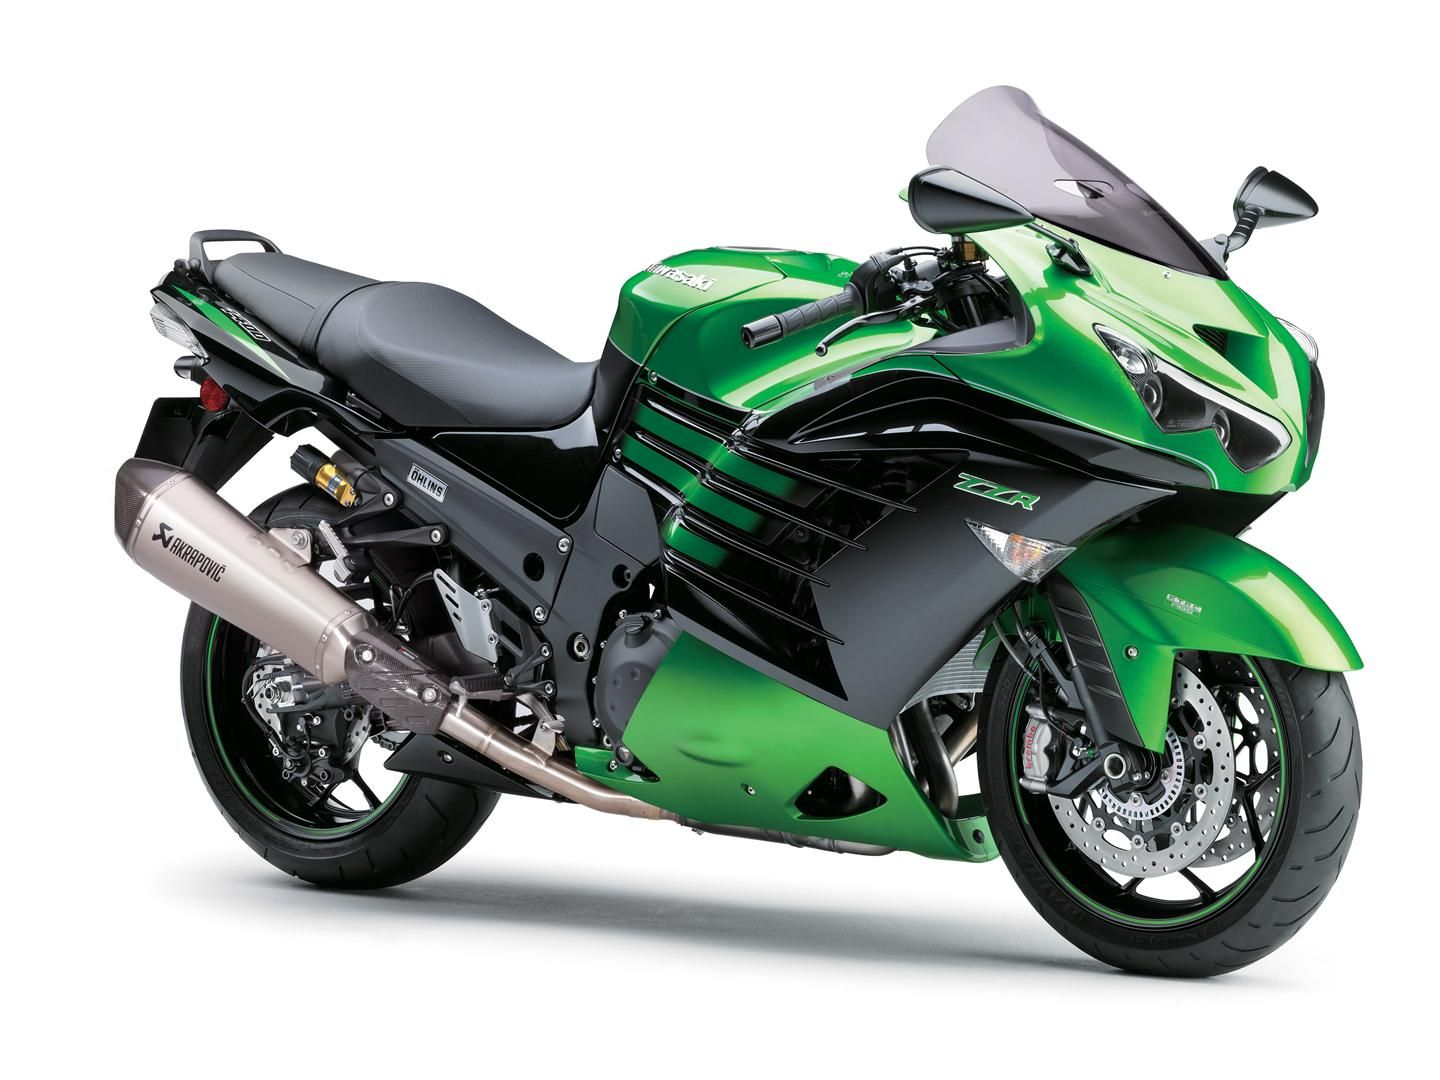 Kawasaki ZZR 1400 ABS Performance S.E.